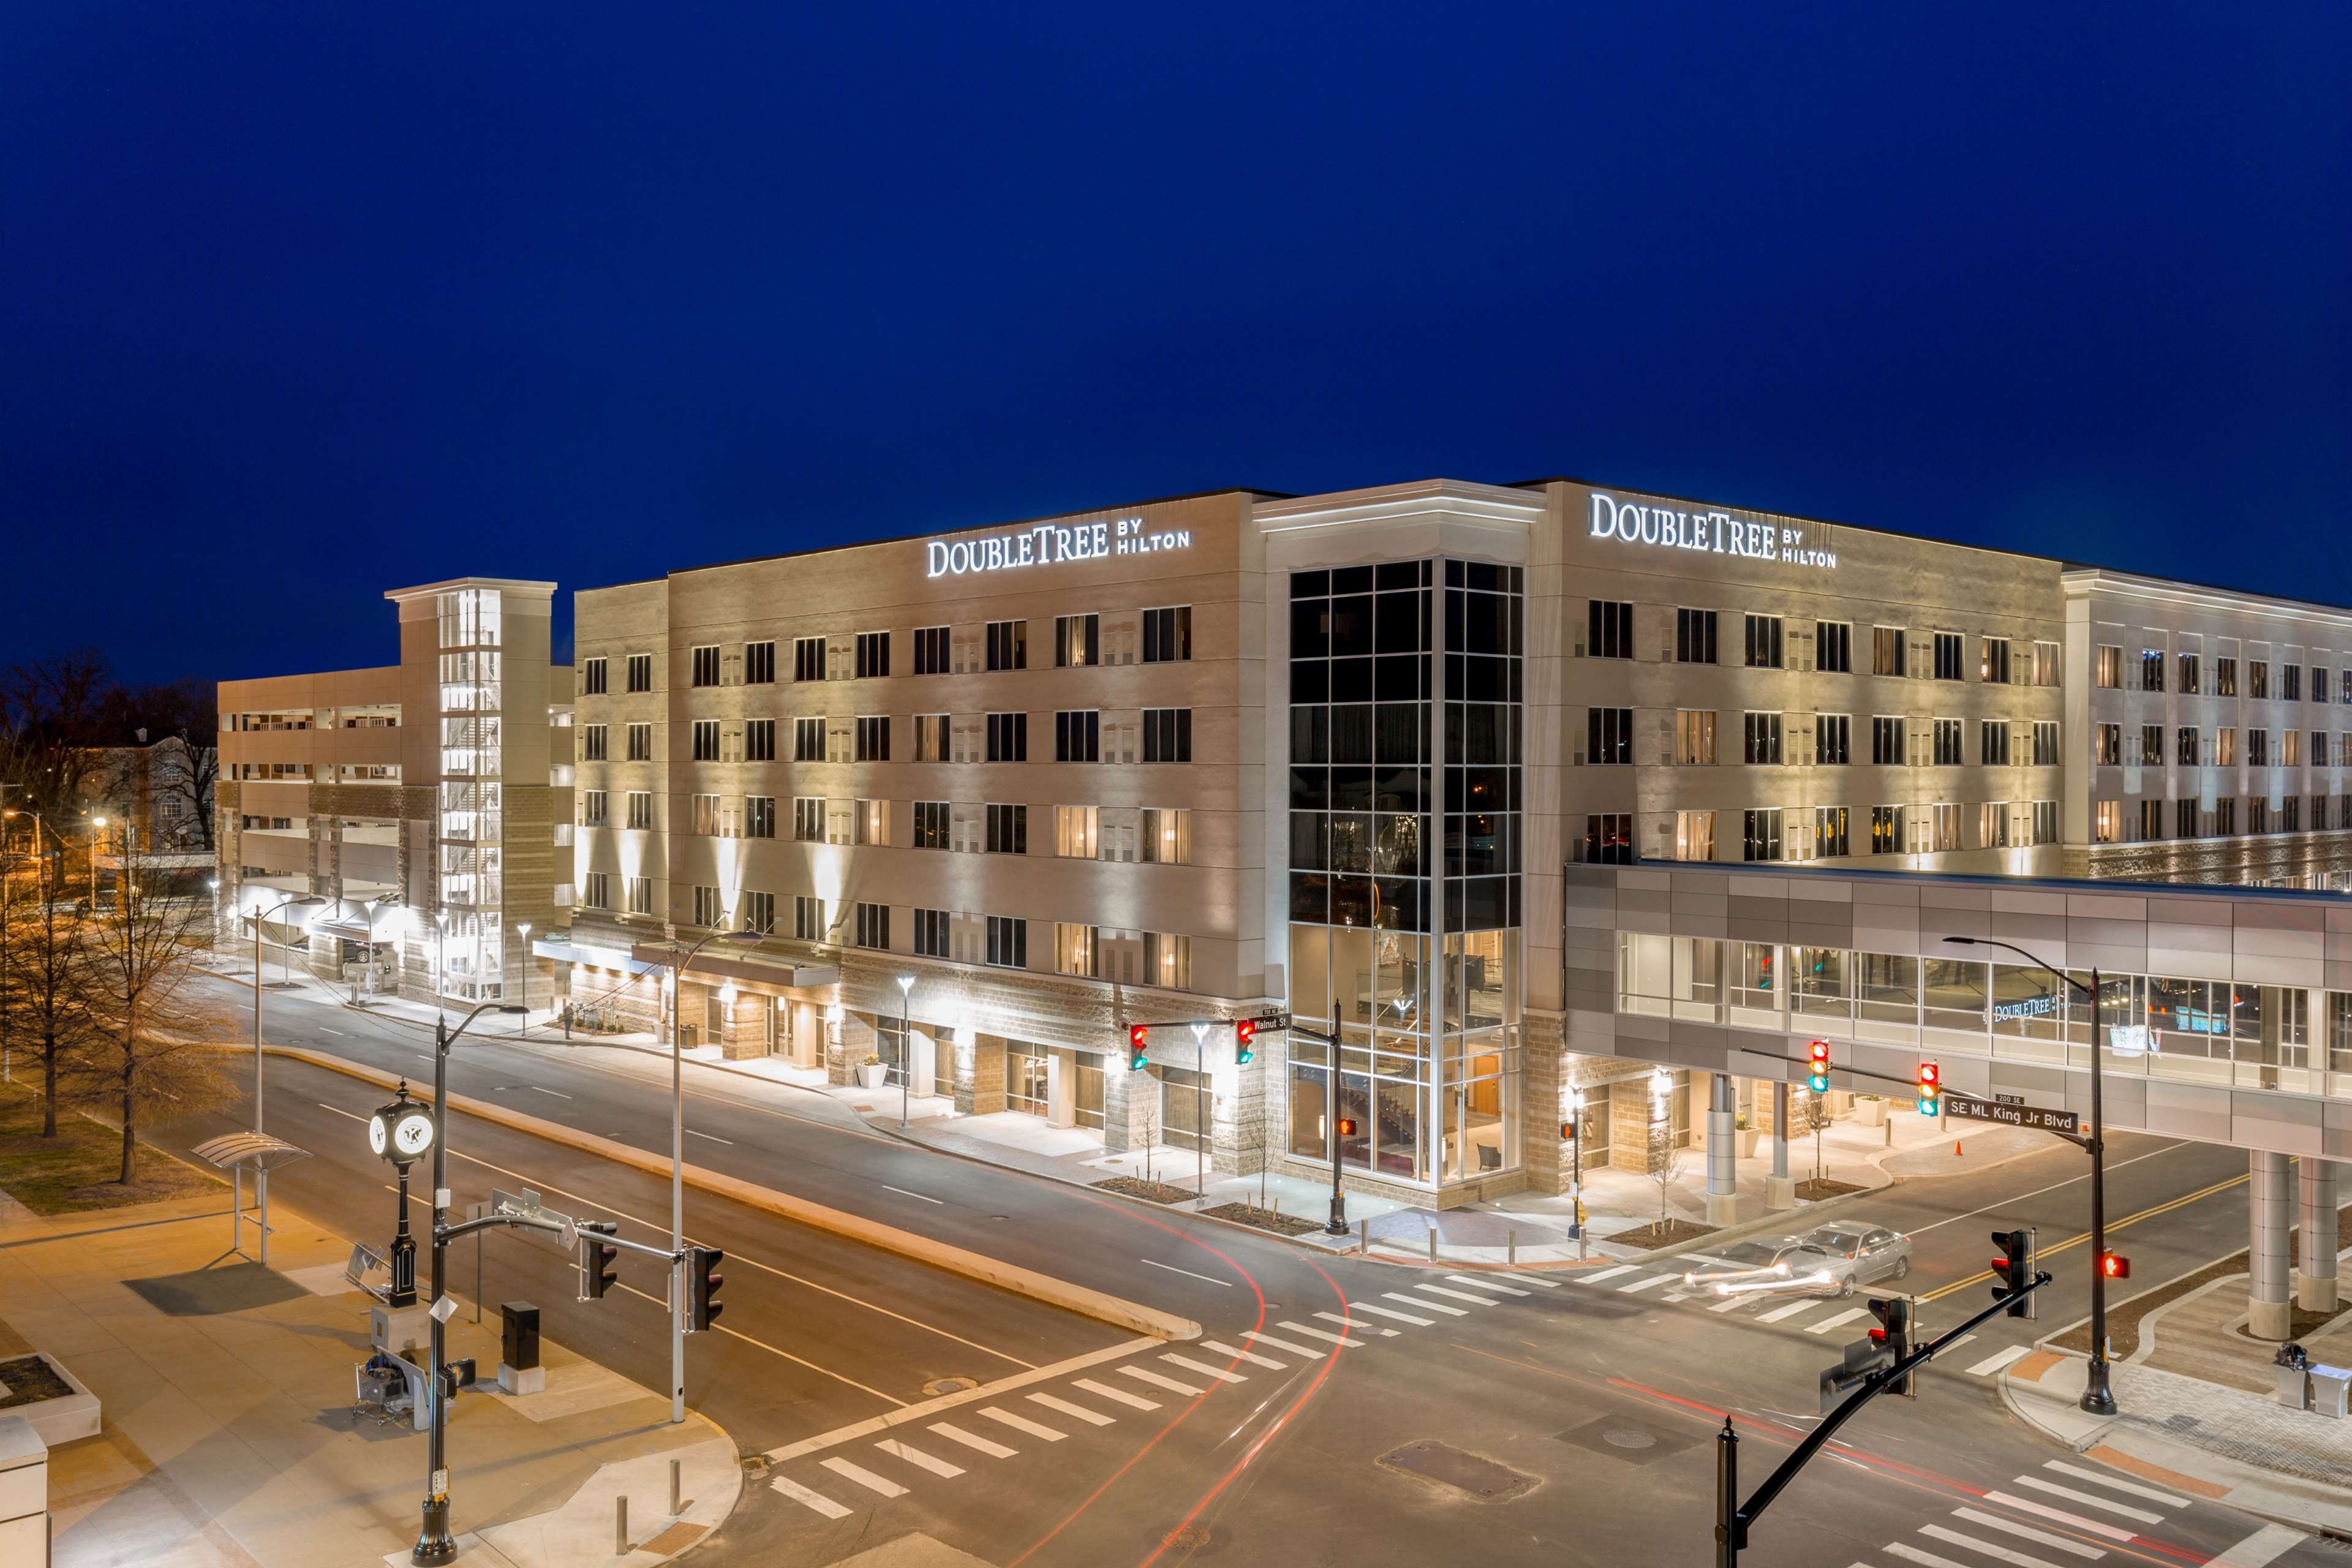 DoubleTree by Hilton Evansville image 0